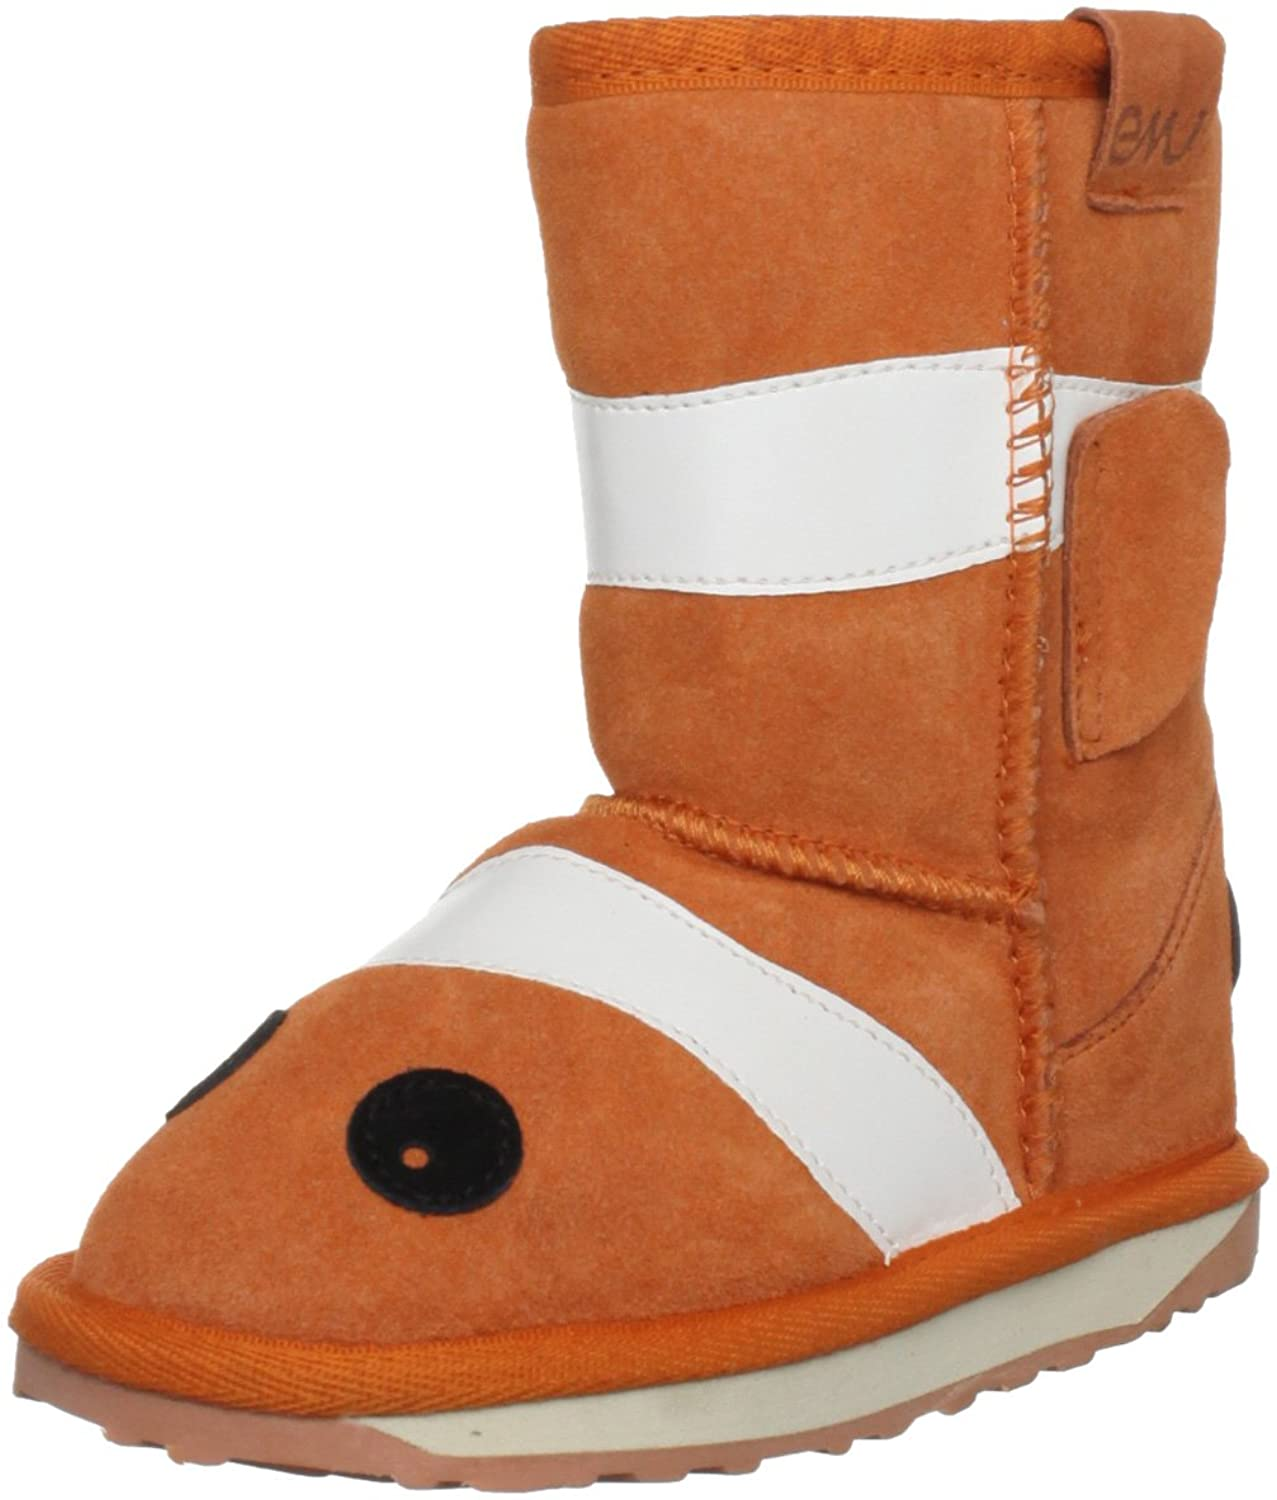 Emu Little Creatures Clown Fish K10593 Mädchen Stiefel bestellen